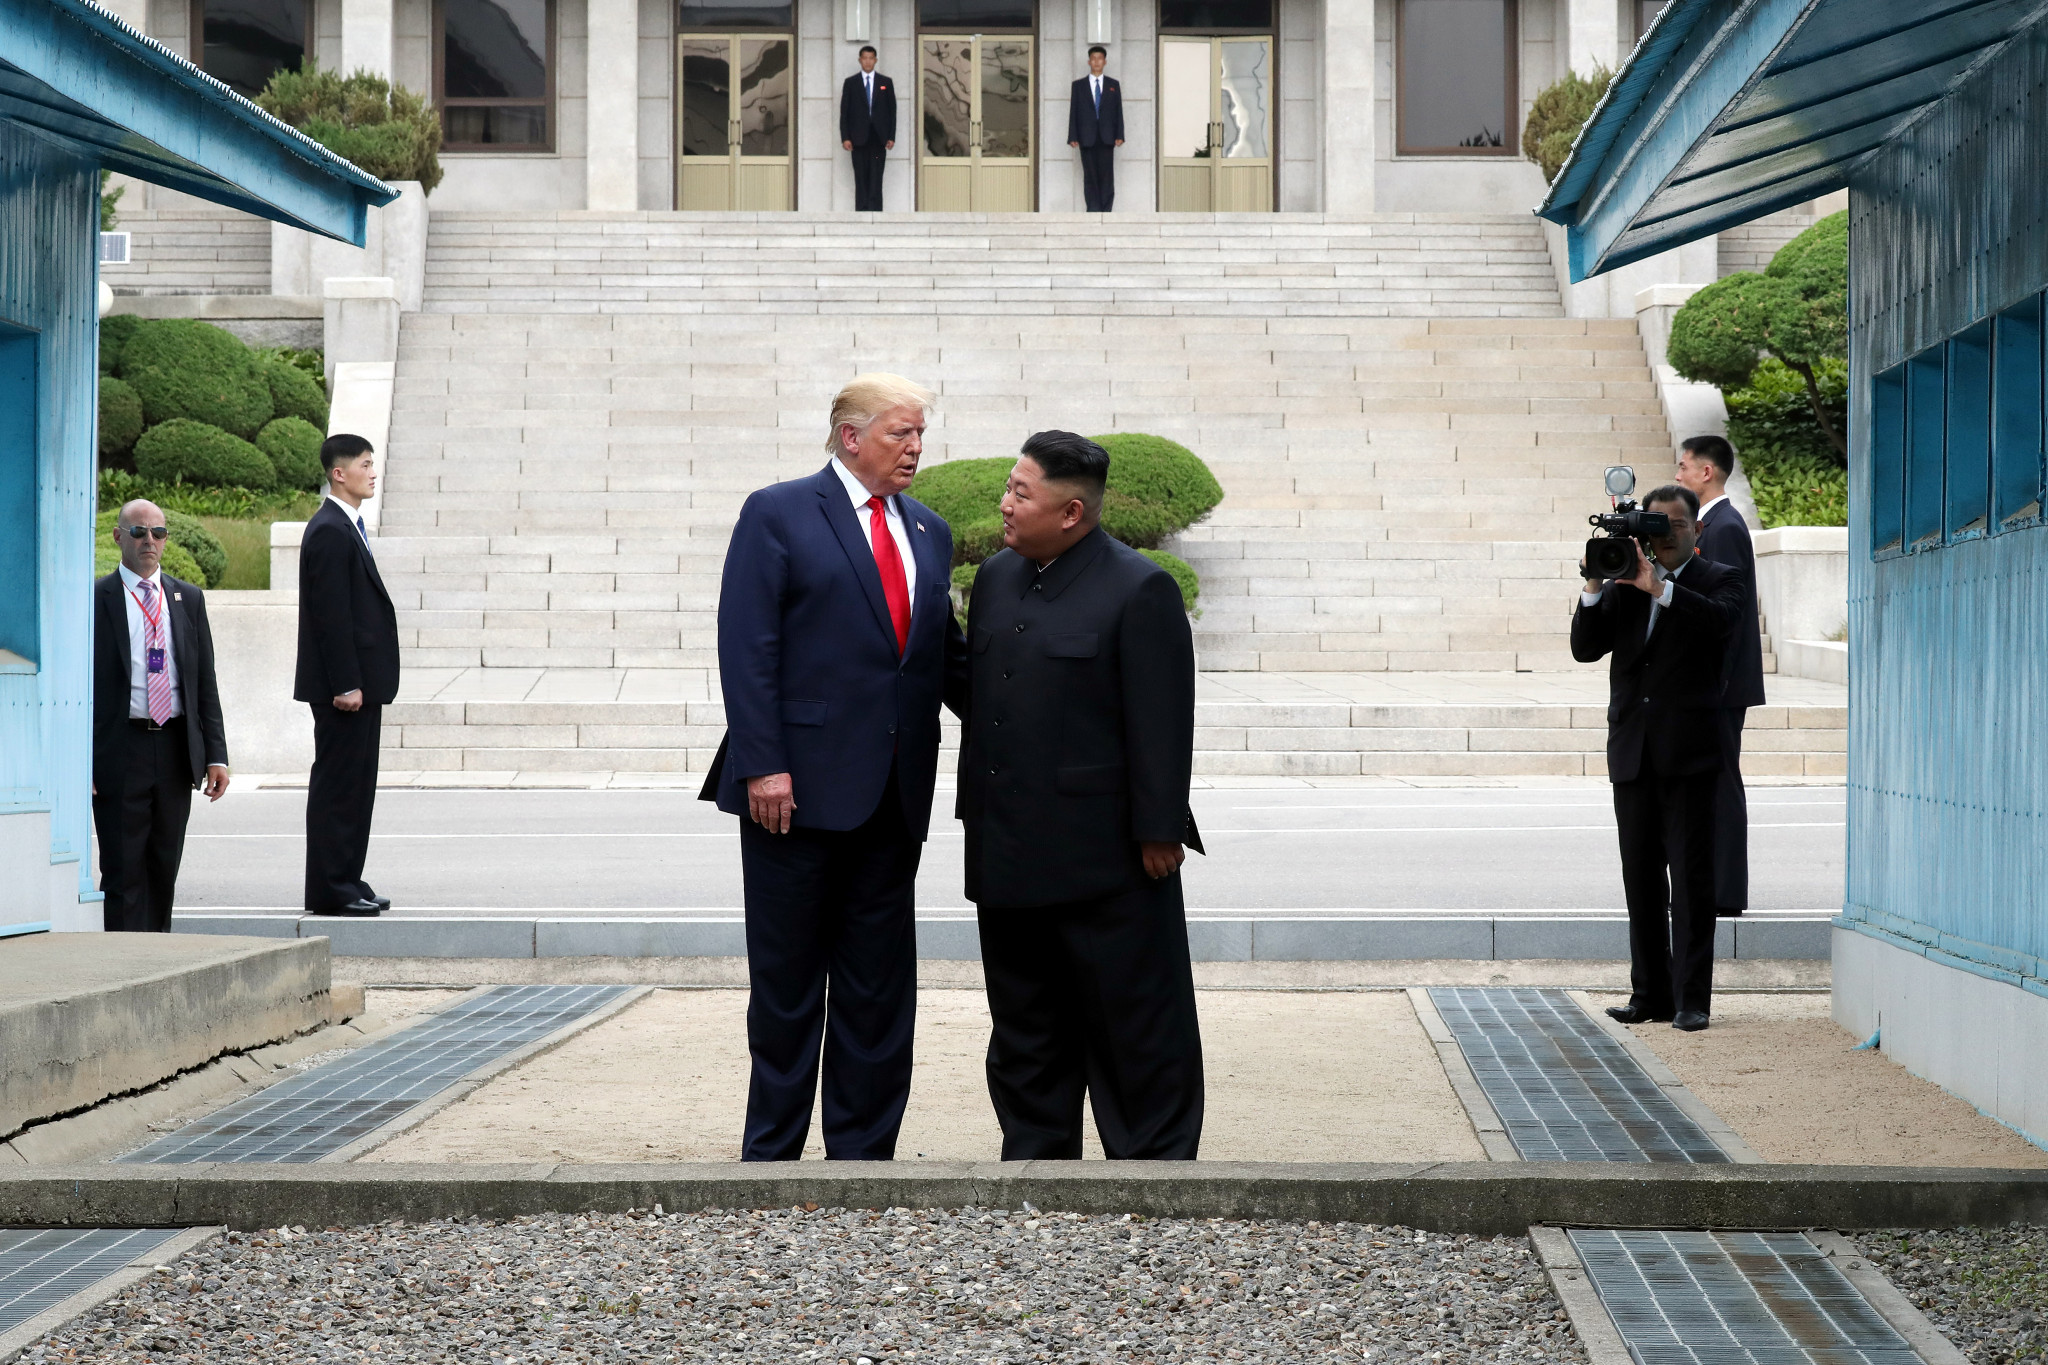 Donald Trump became the first United States President to step foot into North Korea after meeting the country's Leader Kim Jong Un in the Korean Demilitarized Zone ©Getty Images